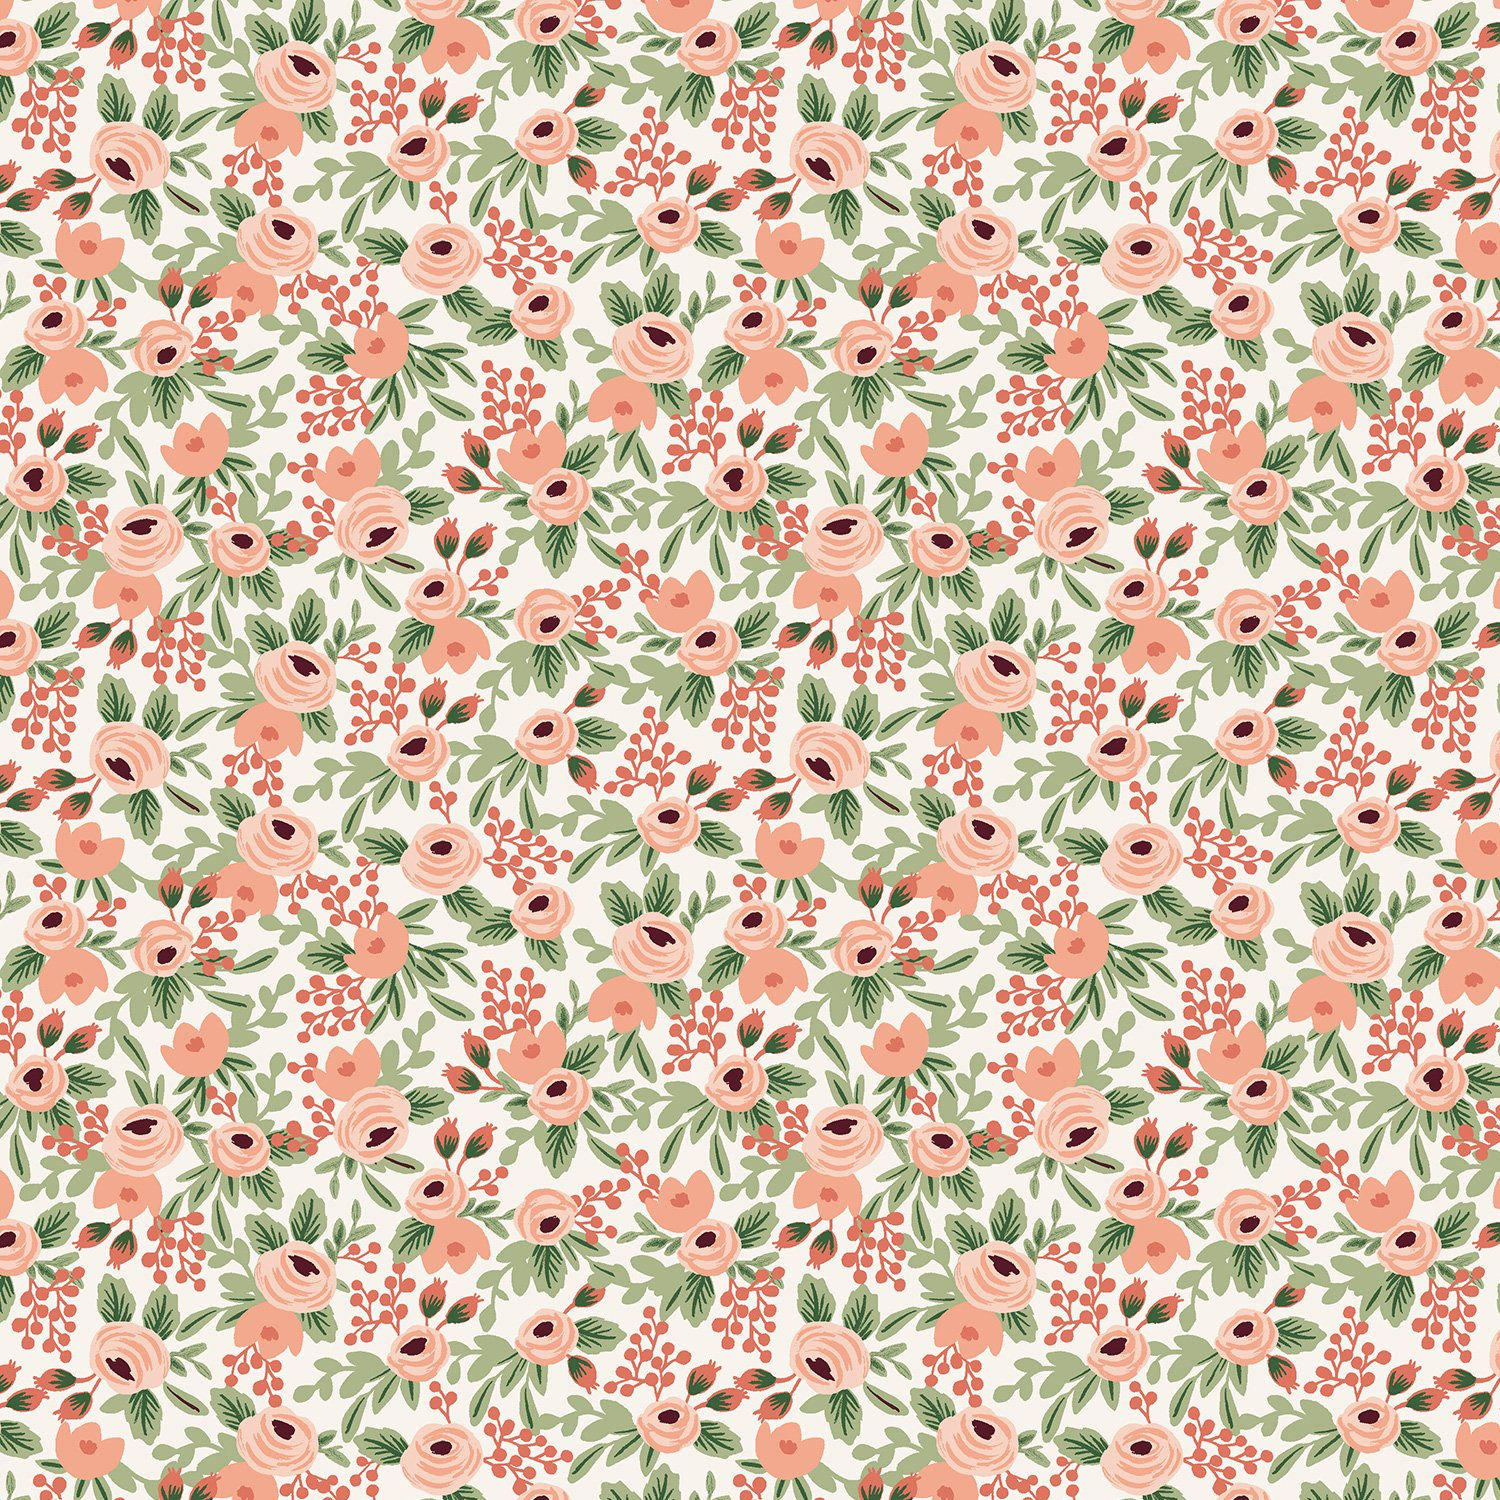 Rifle Paper Co. Garden Party Rosa - Rose